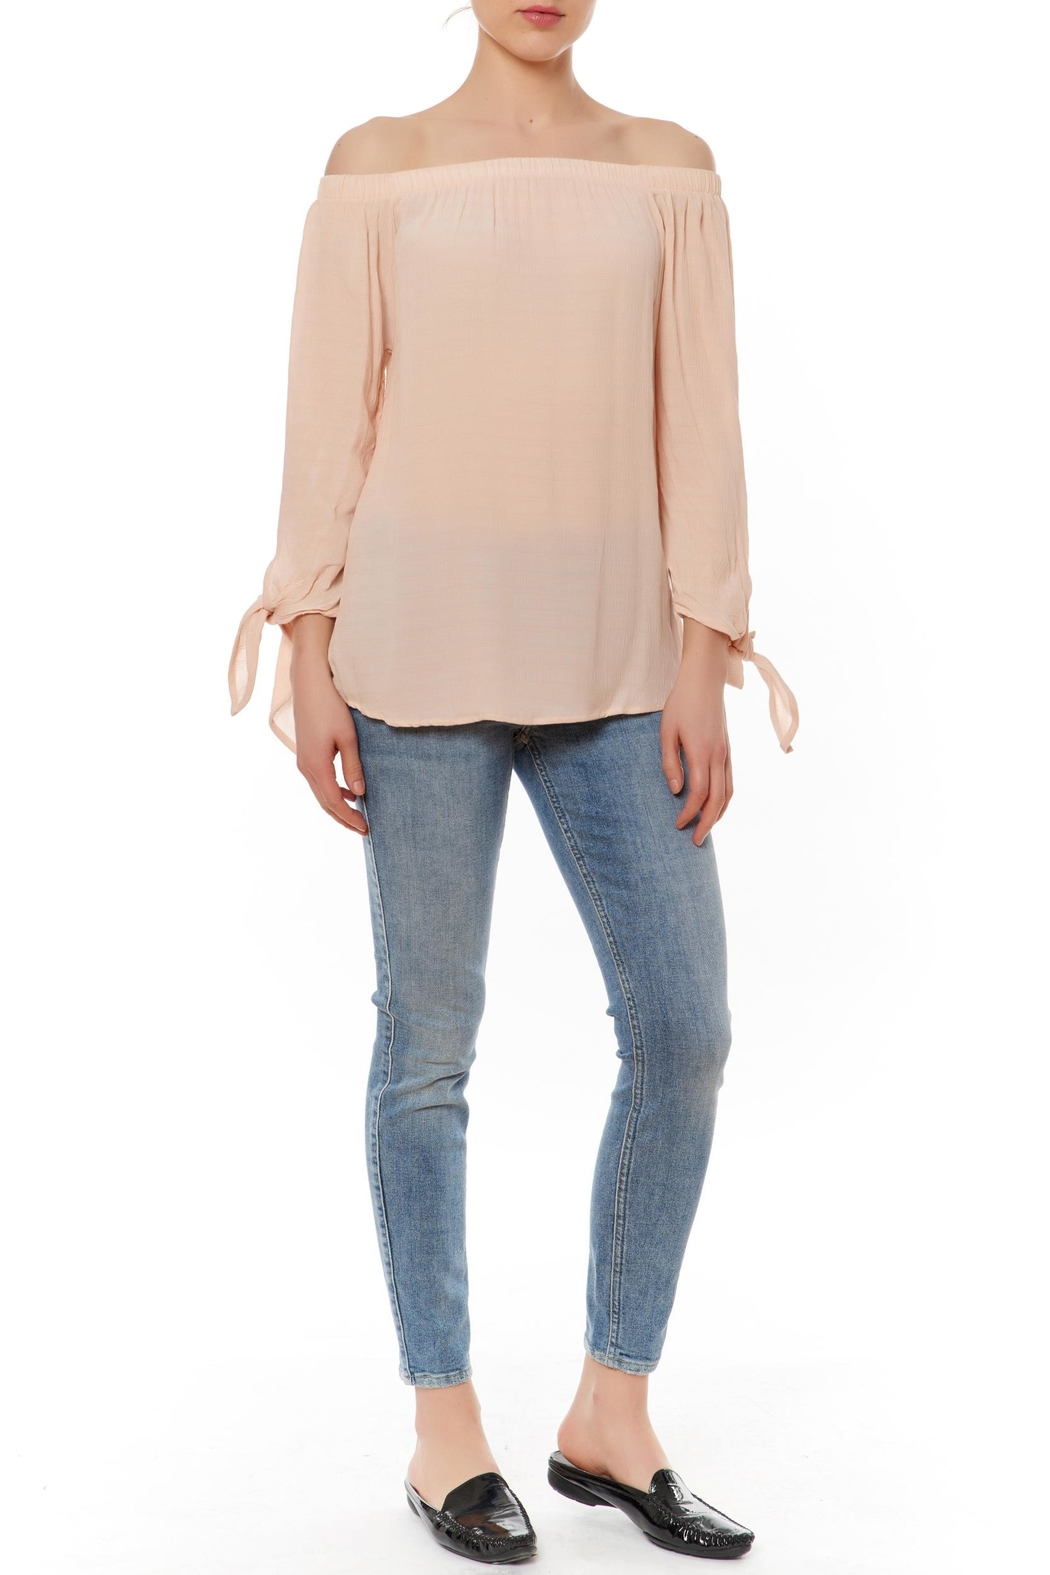 Le Lis Off Shoulder Tie Top - Front Cropped Image